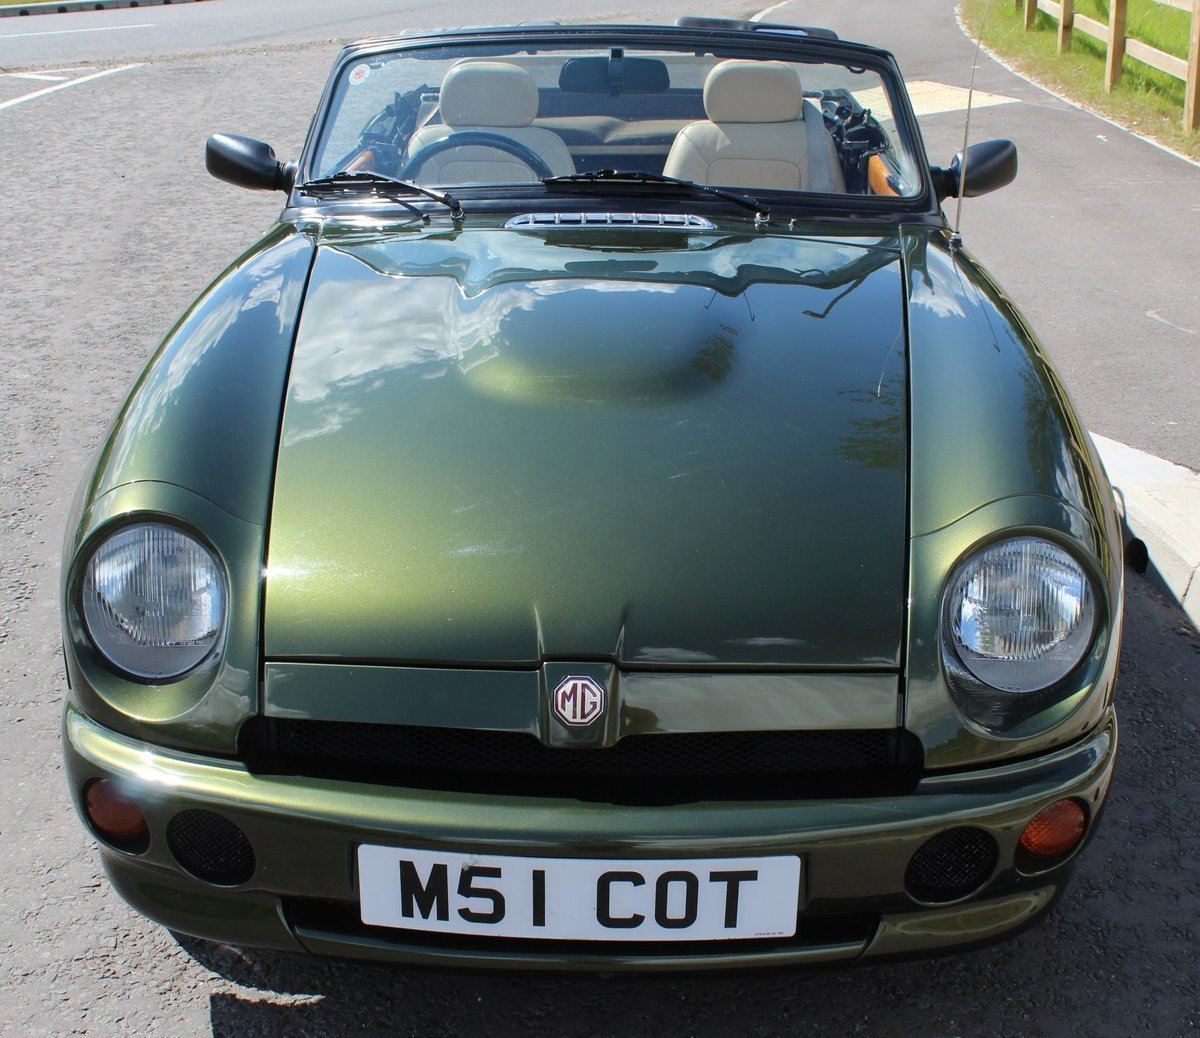 1995 MG RV8 Roadster 3 Owners in the UK from 2002 For Sale (picture 2 of 6)